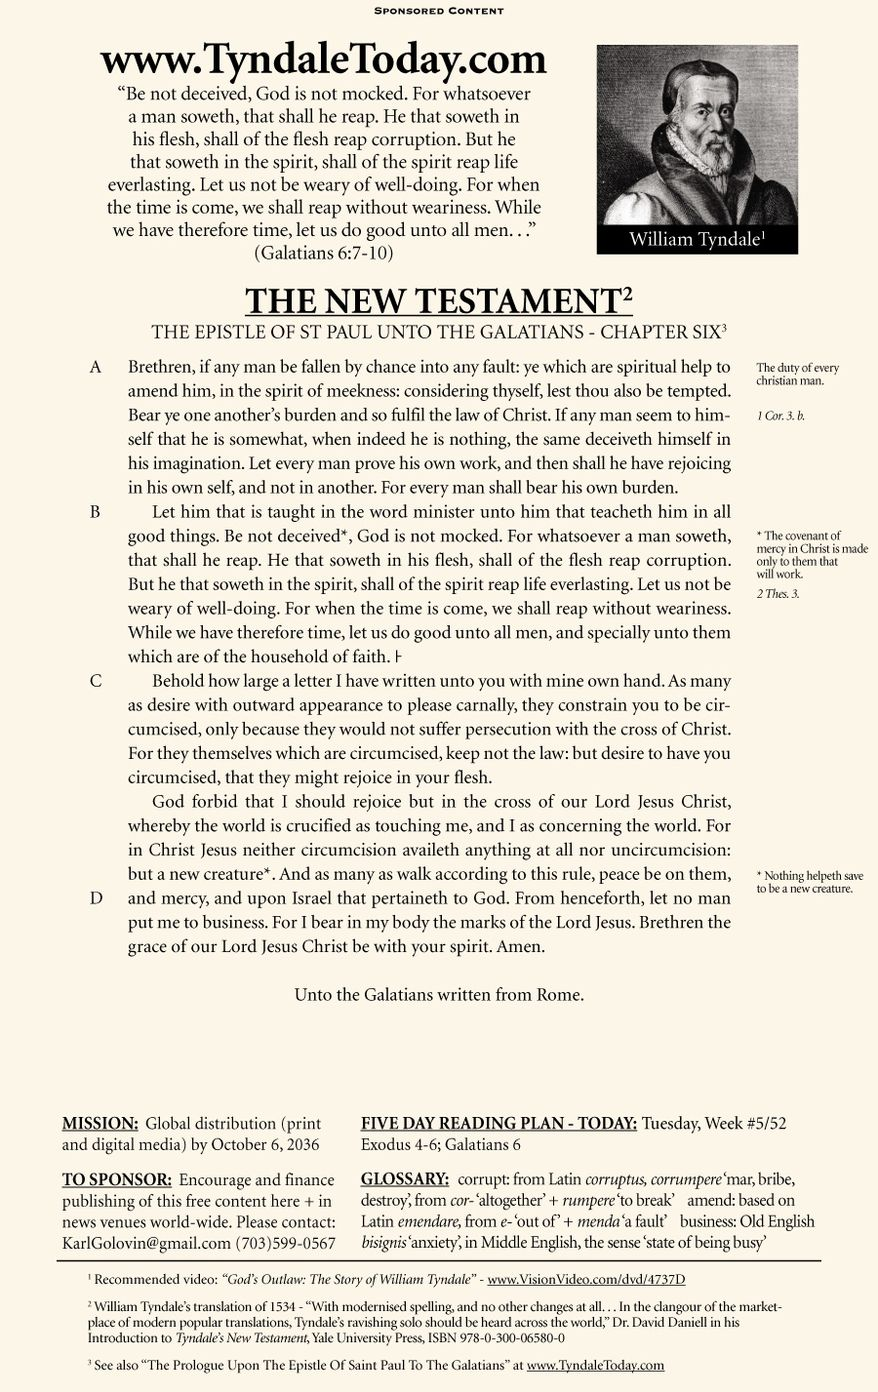 A daily reading of William Tyndale's 1534 translation of The New Testament from Tyndale Today. (Sponsored content January 31, 2016 in The Washington Times)